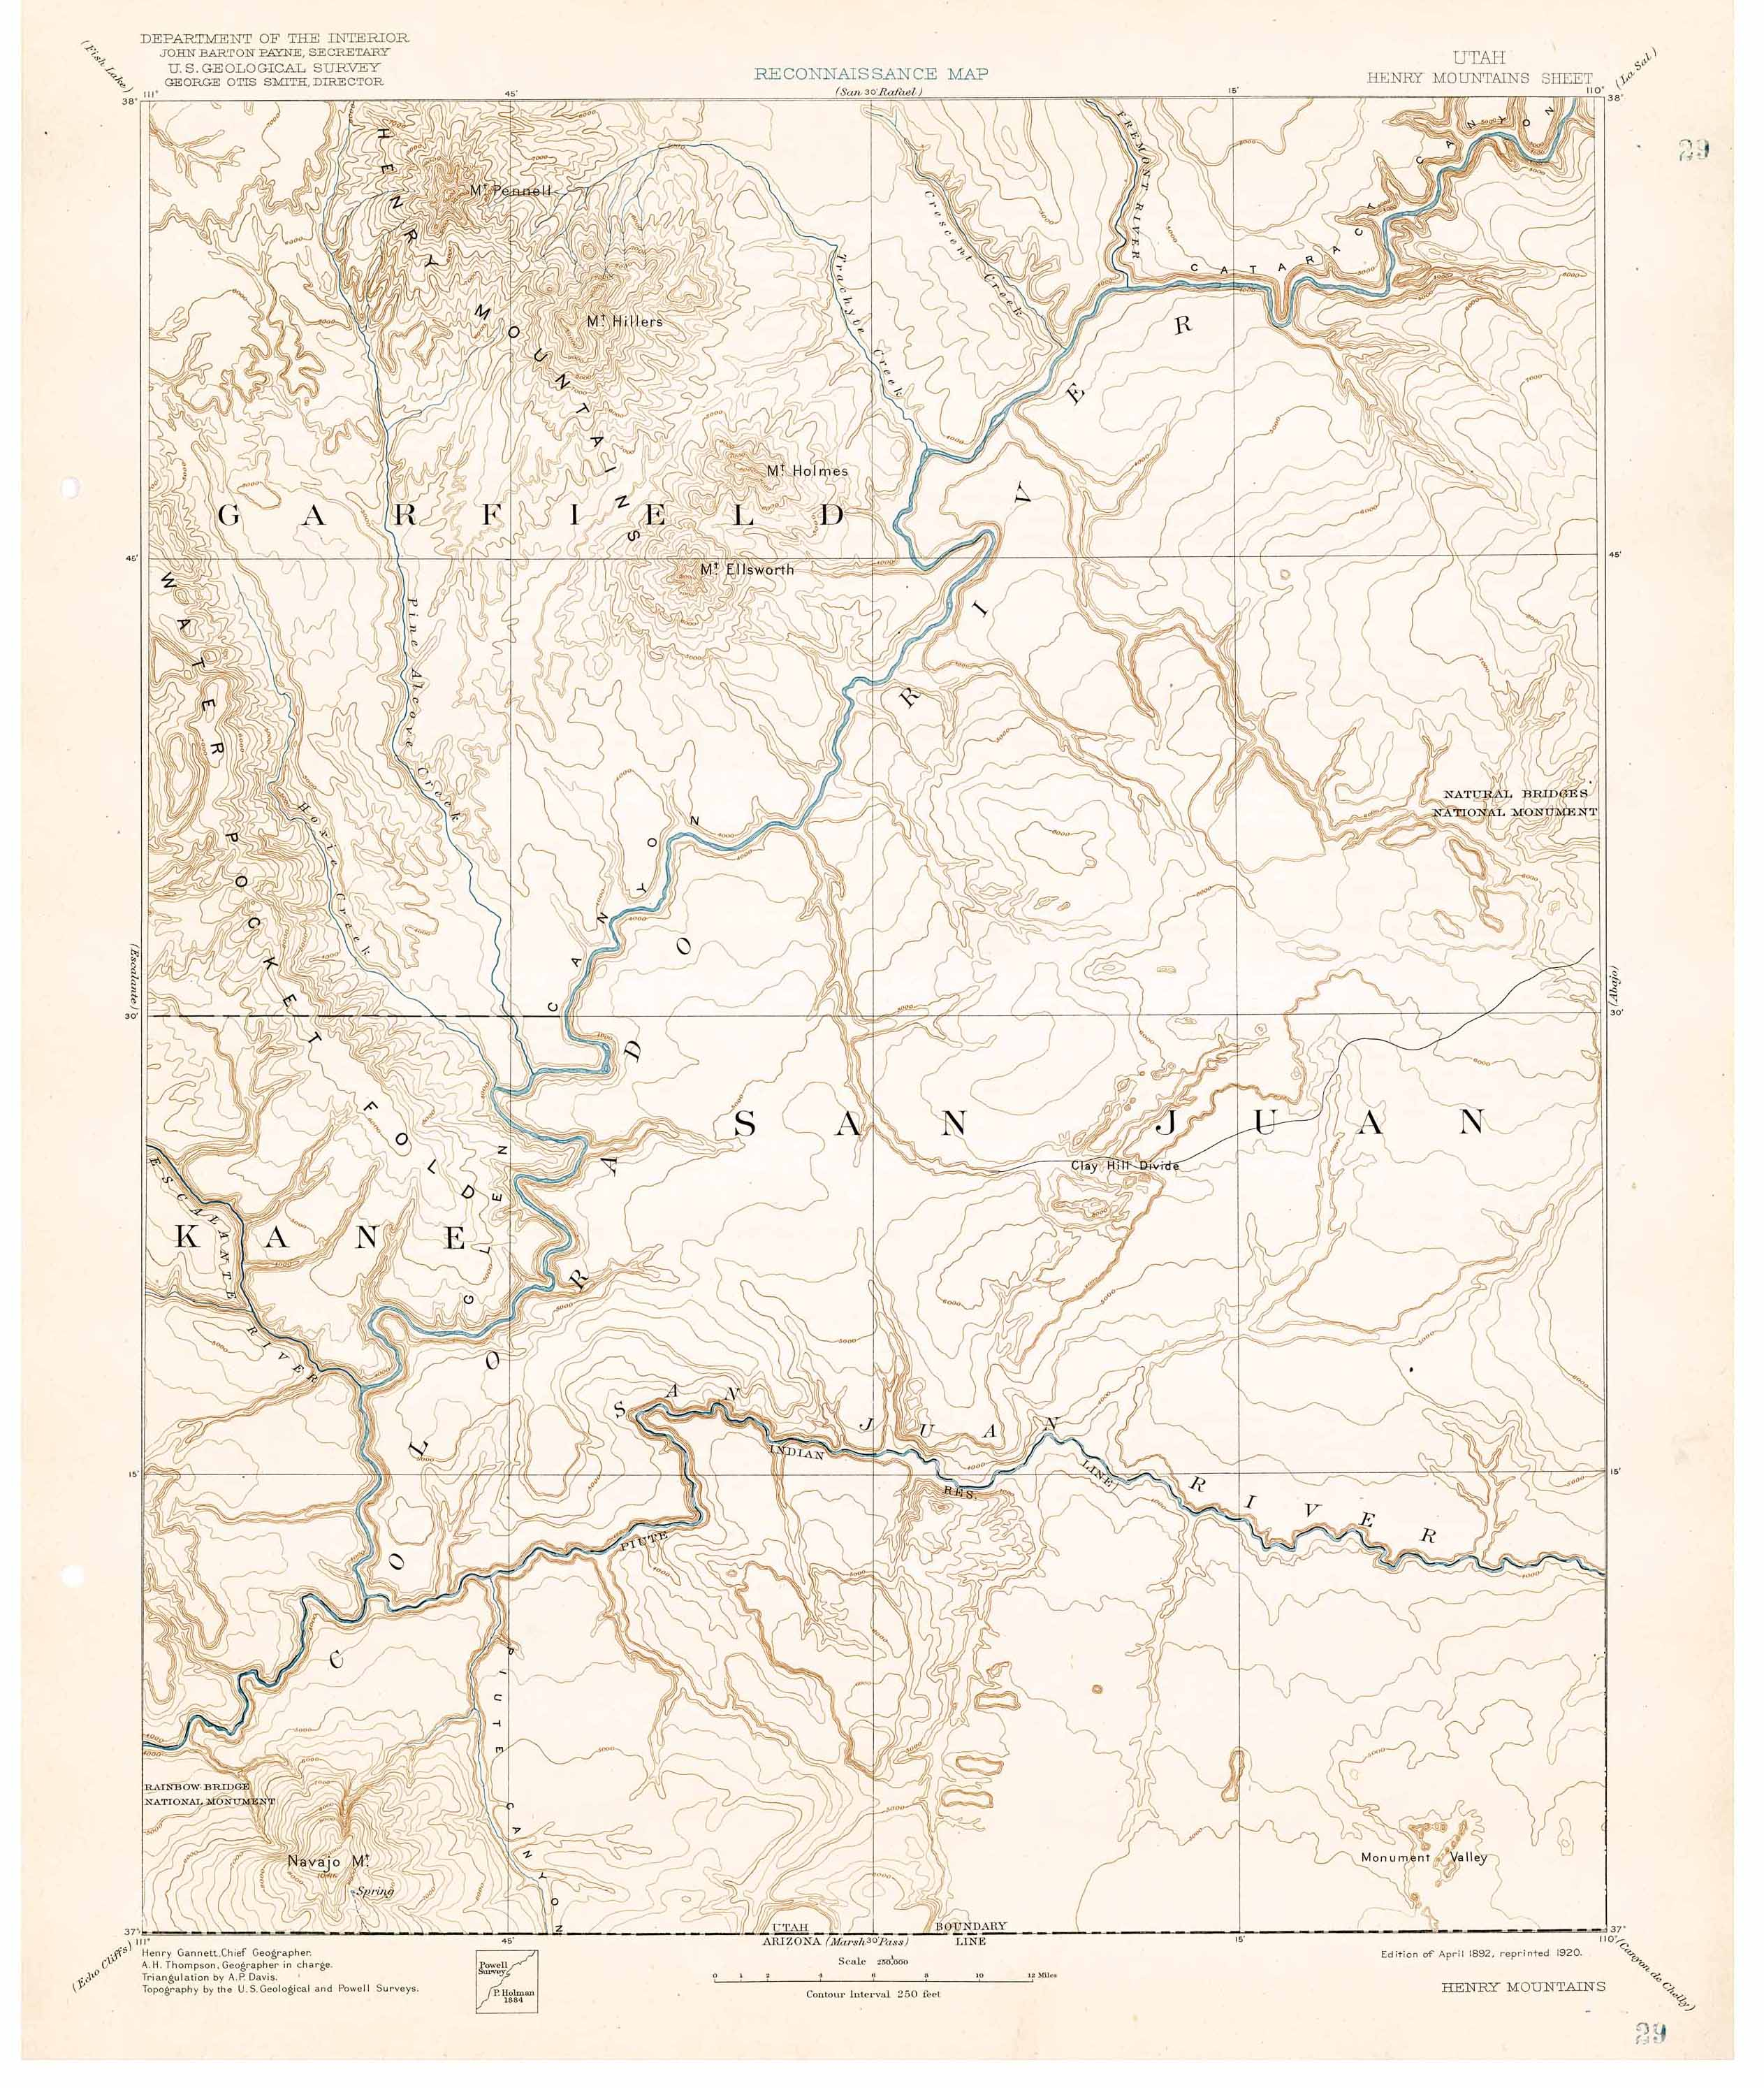 Henry Mtns Topo Map Circa 1892  Henry Mountains UT  Mappery